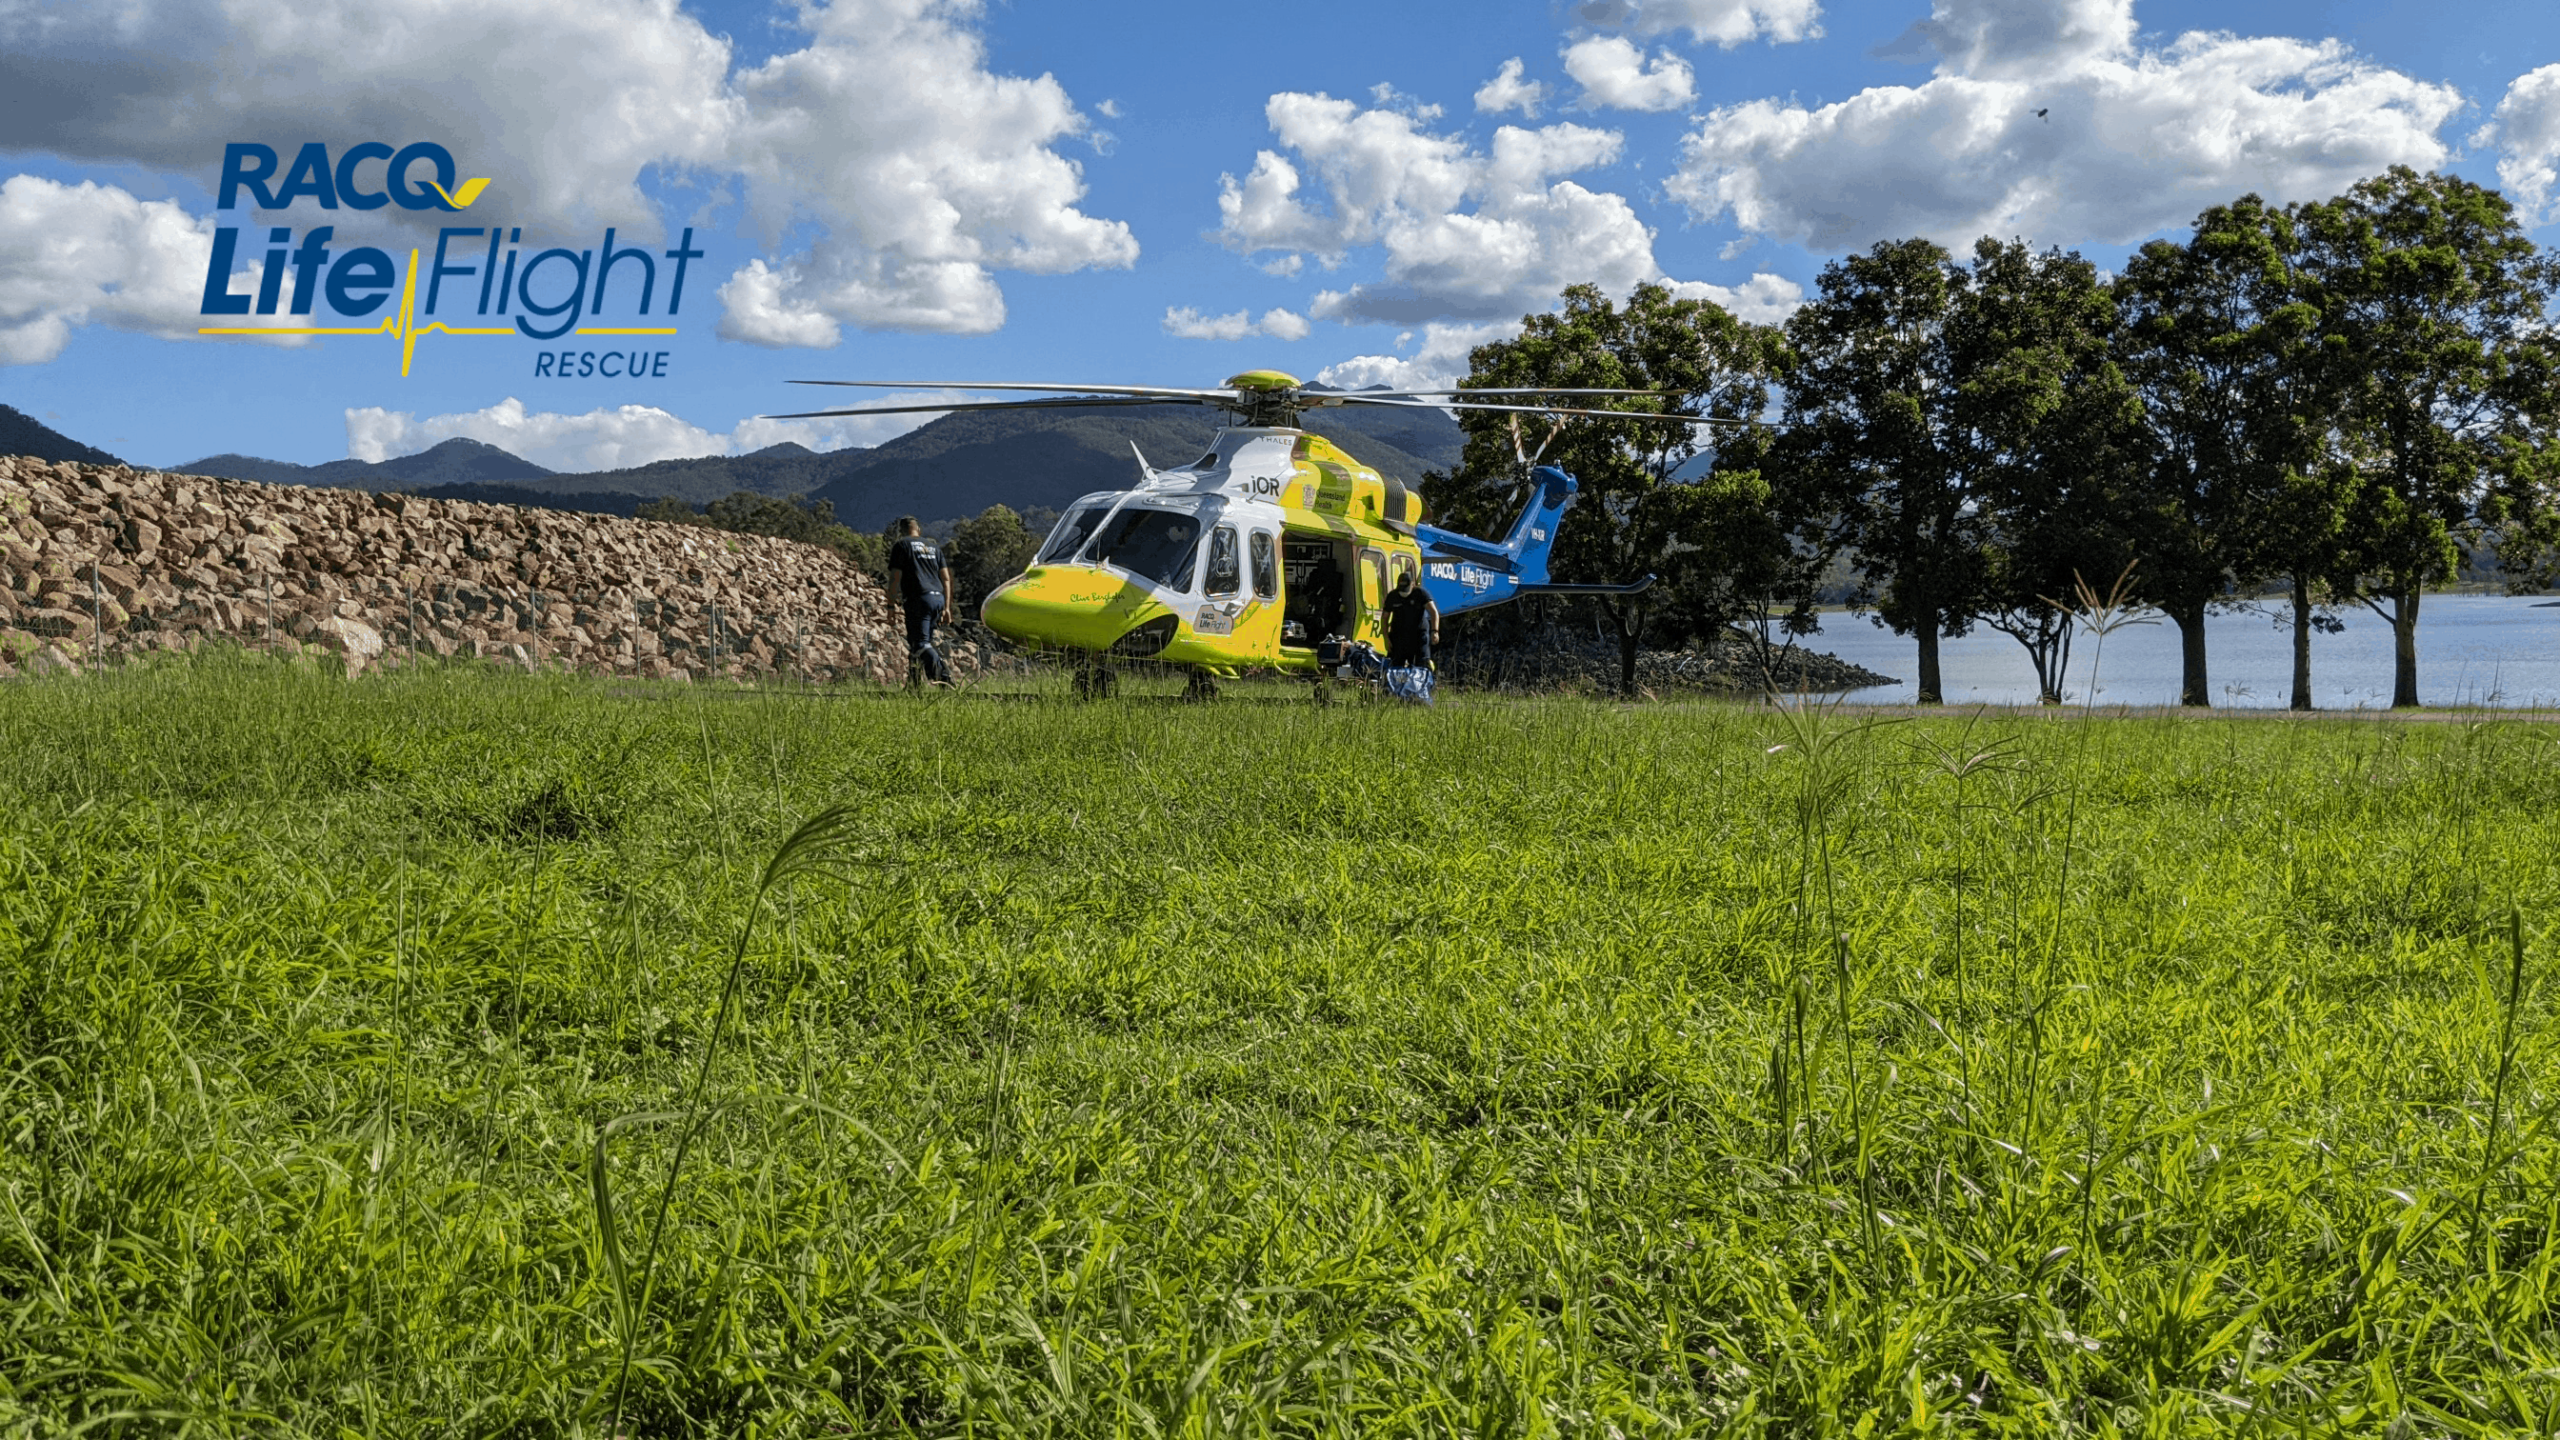 Man airlifted after lawn mower rollover